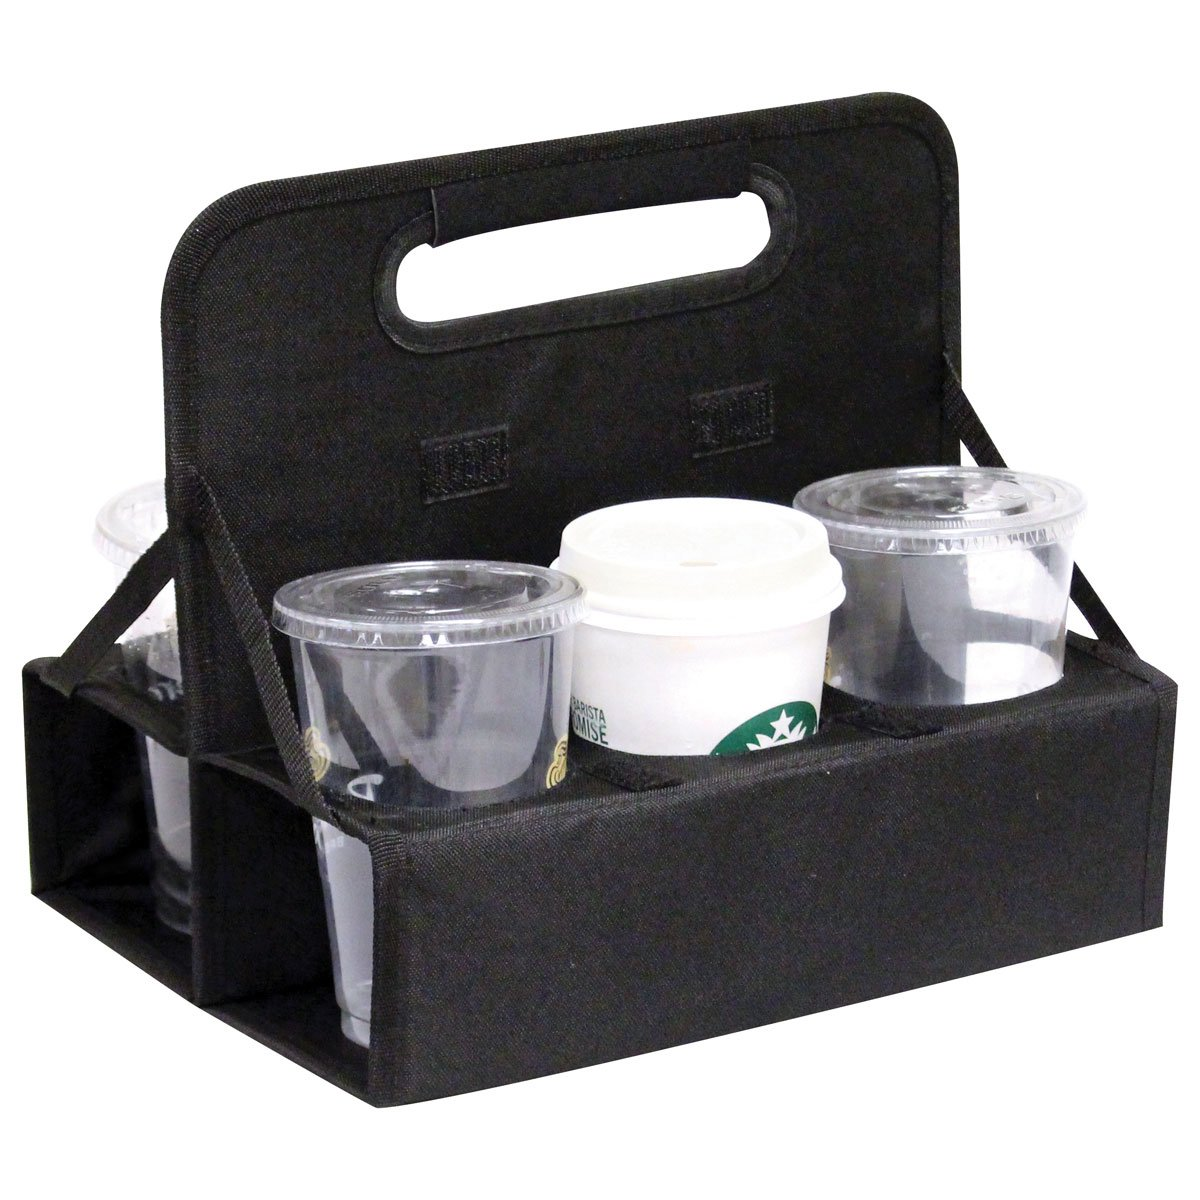 2 Pack Outdoor Sport Reusable Cup Carrier//Cup Caddy